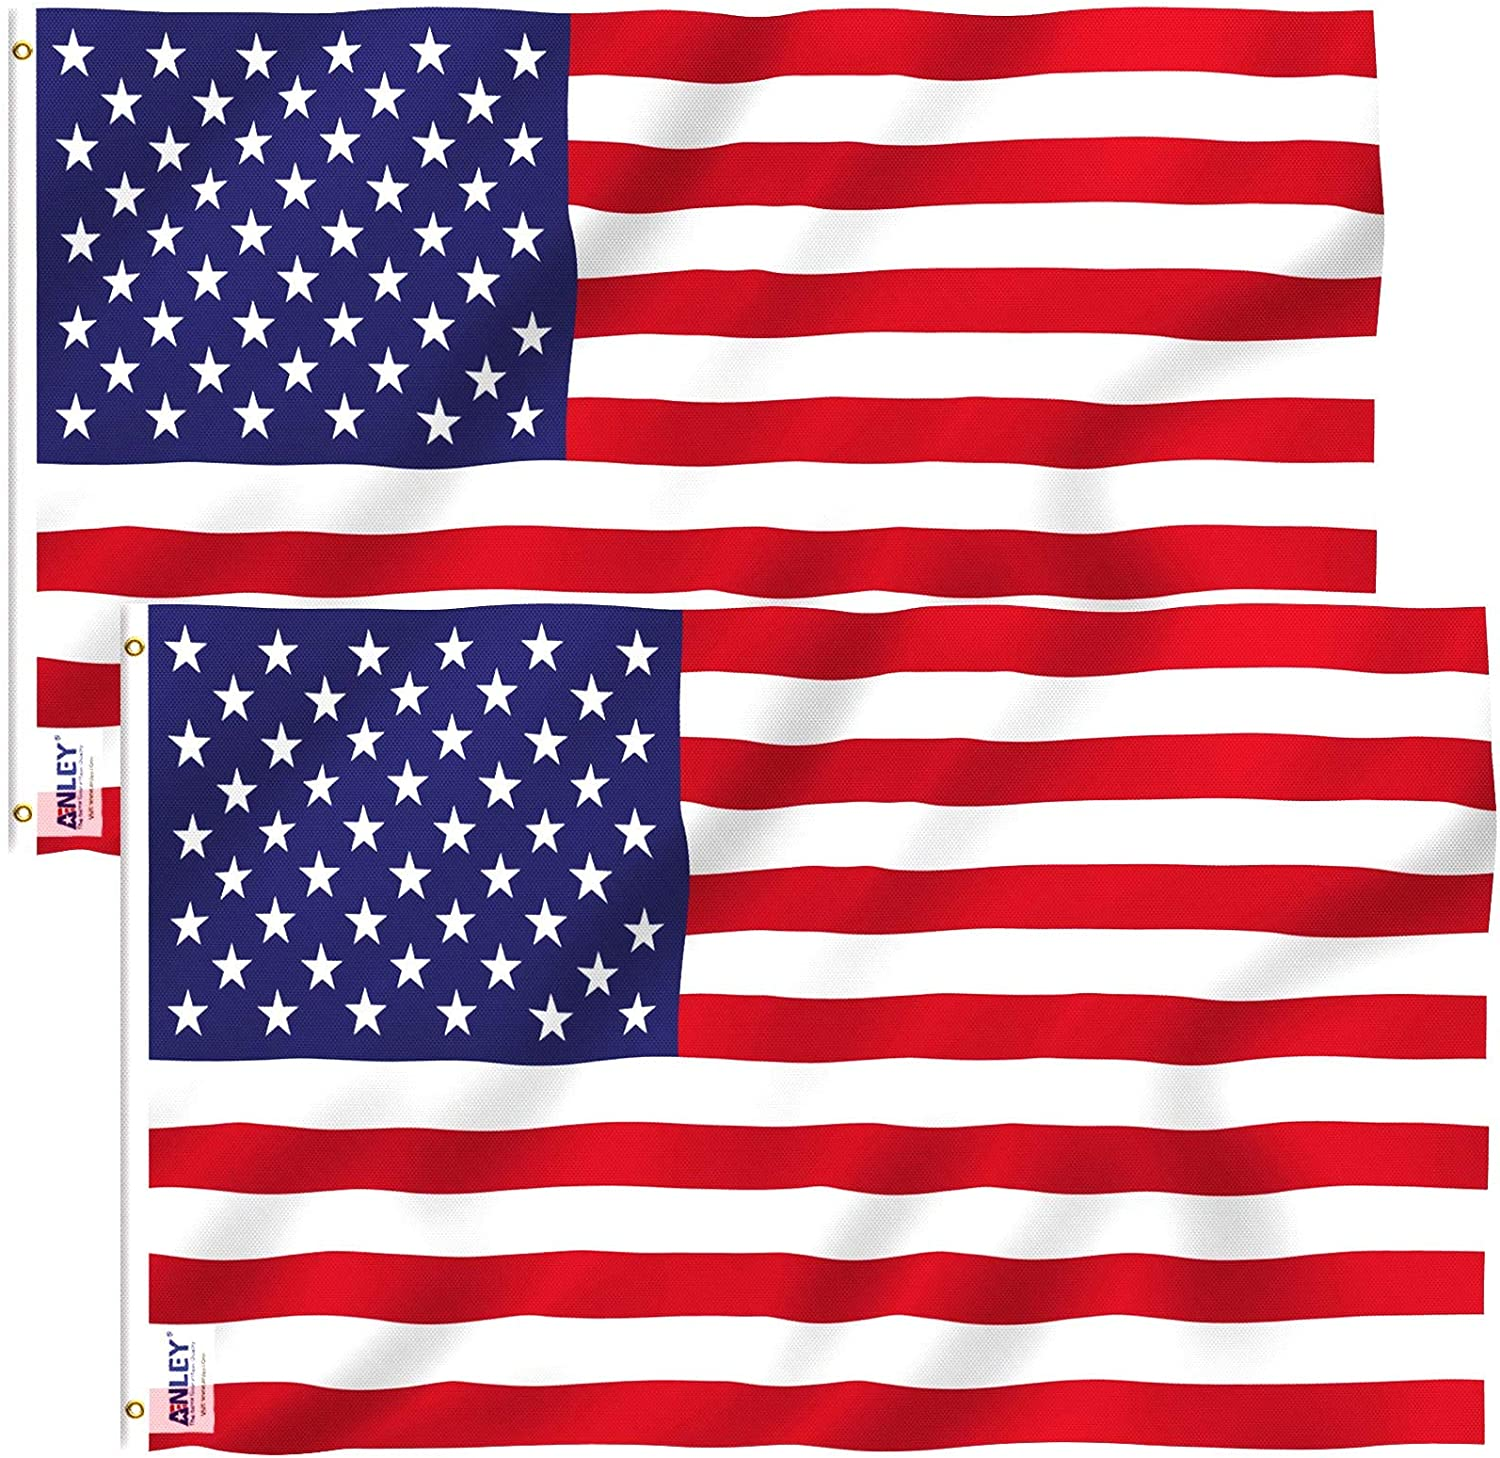 Anley Pack of 2 Fly Breeze 3x5 Attention brand Max 59% OFF - American US Foot Polyester Flag